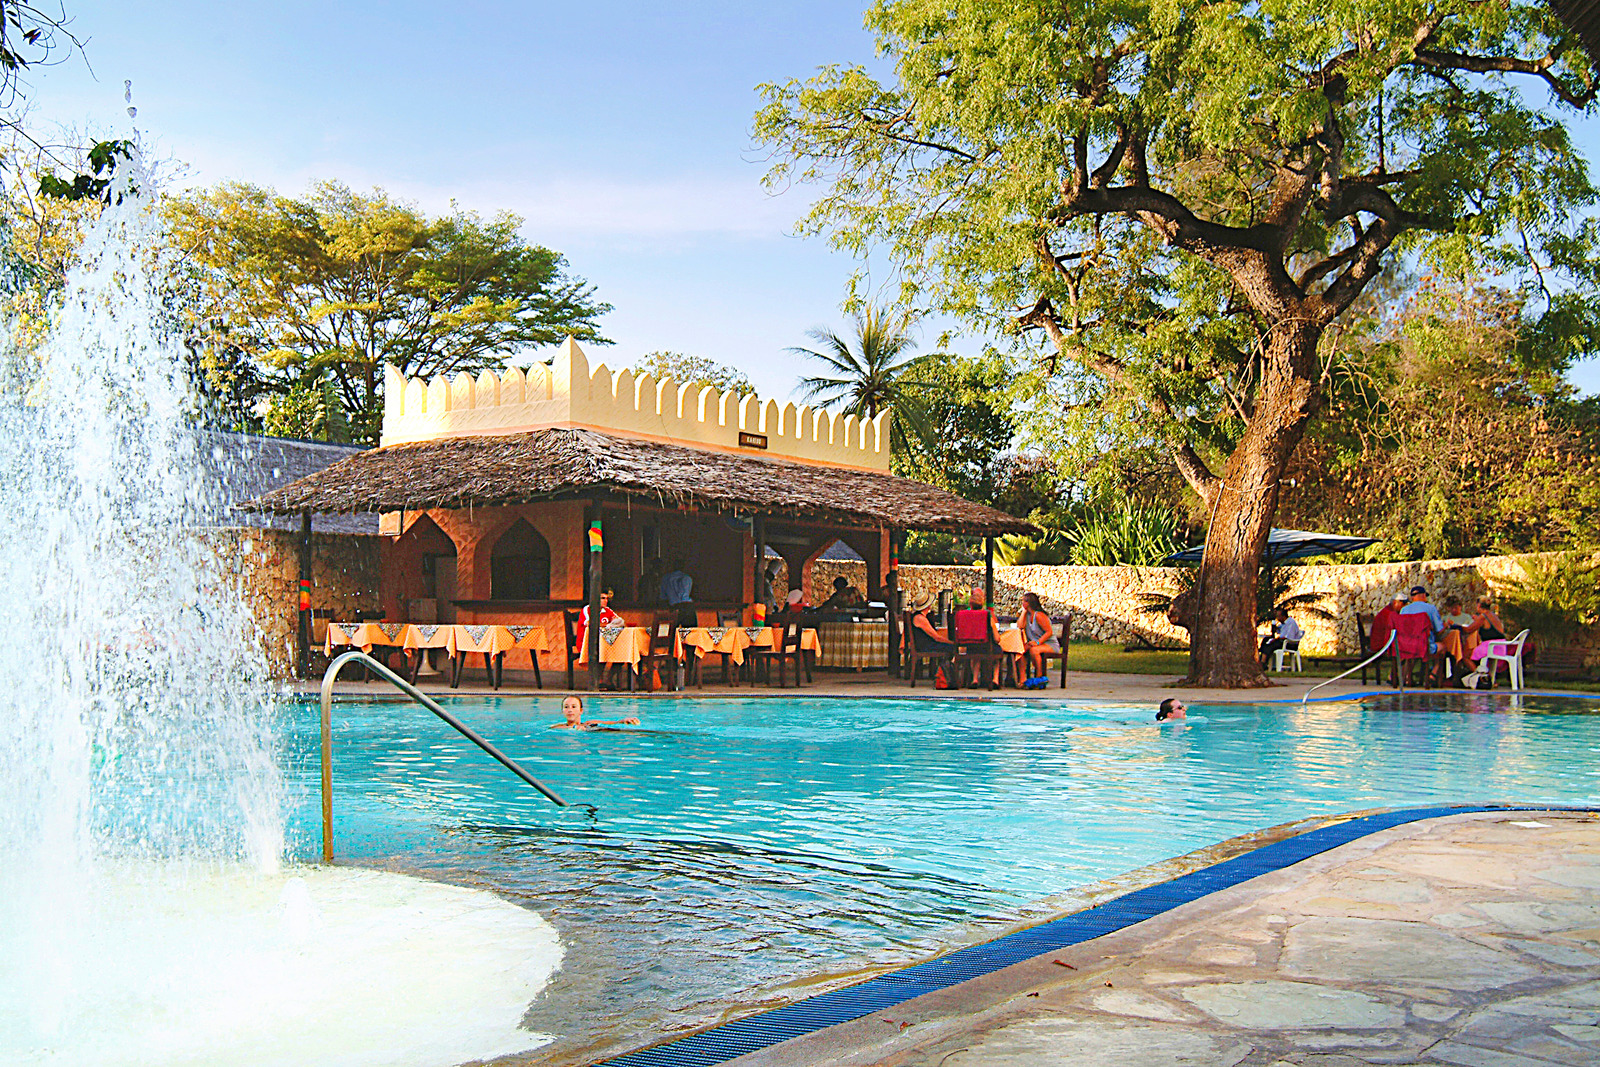 Bamburi Beach Hotel